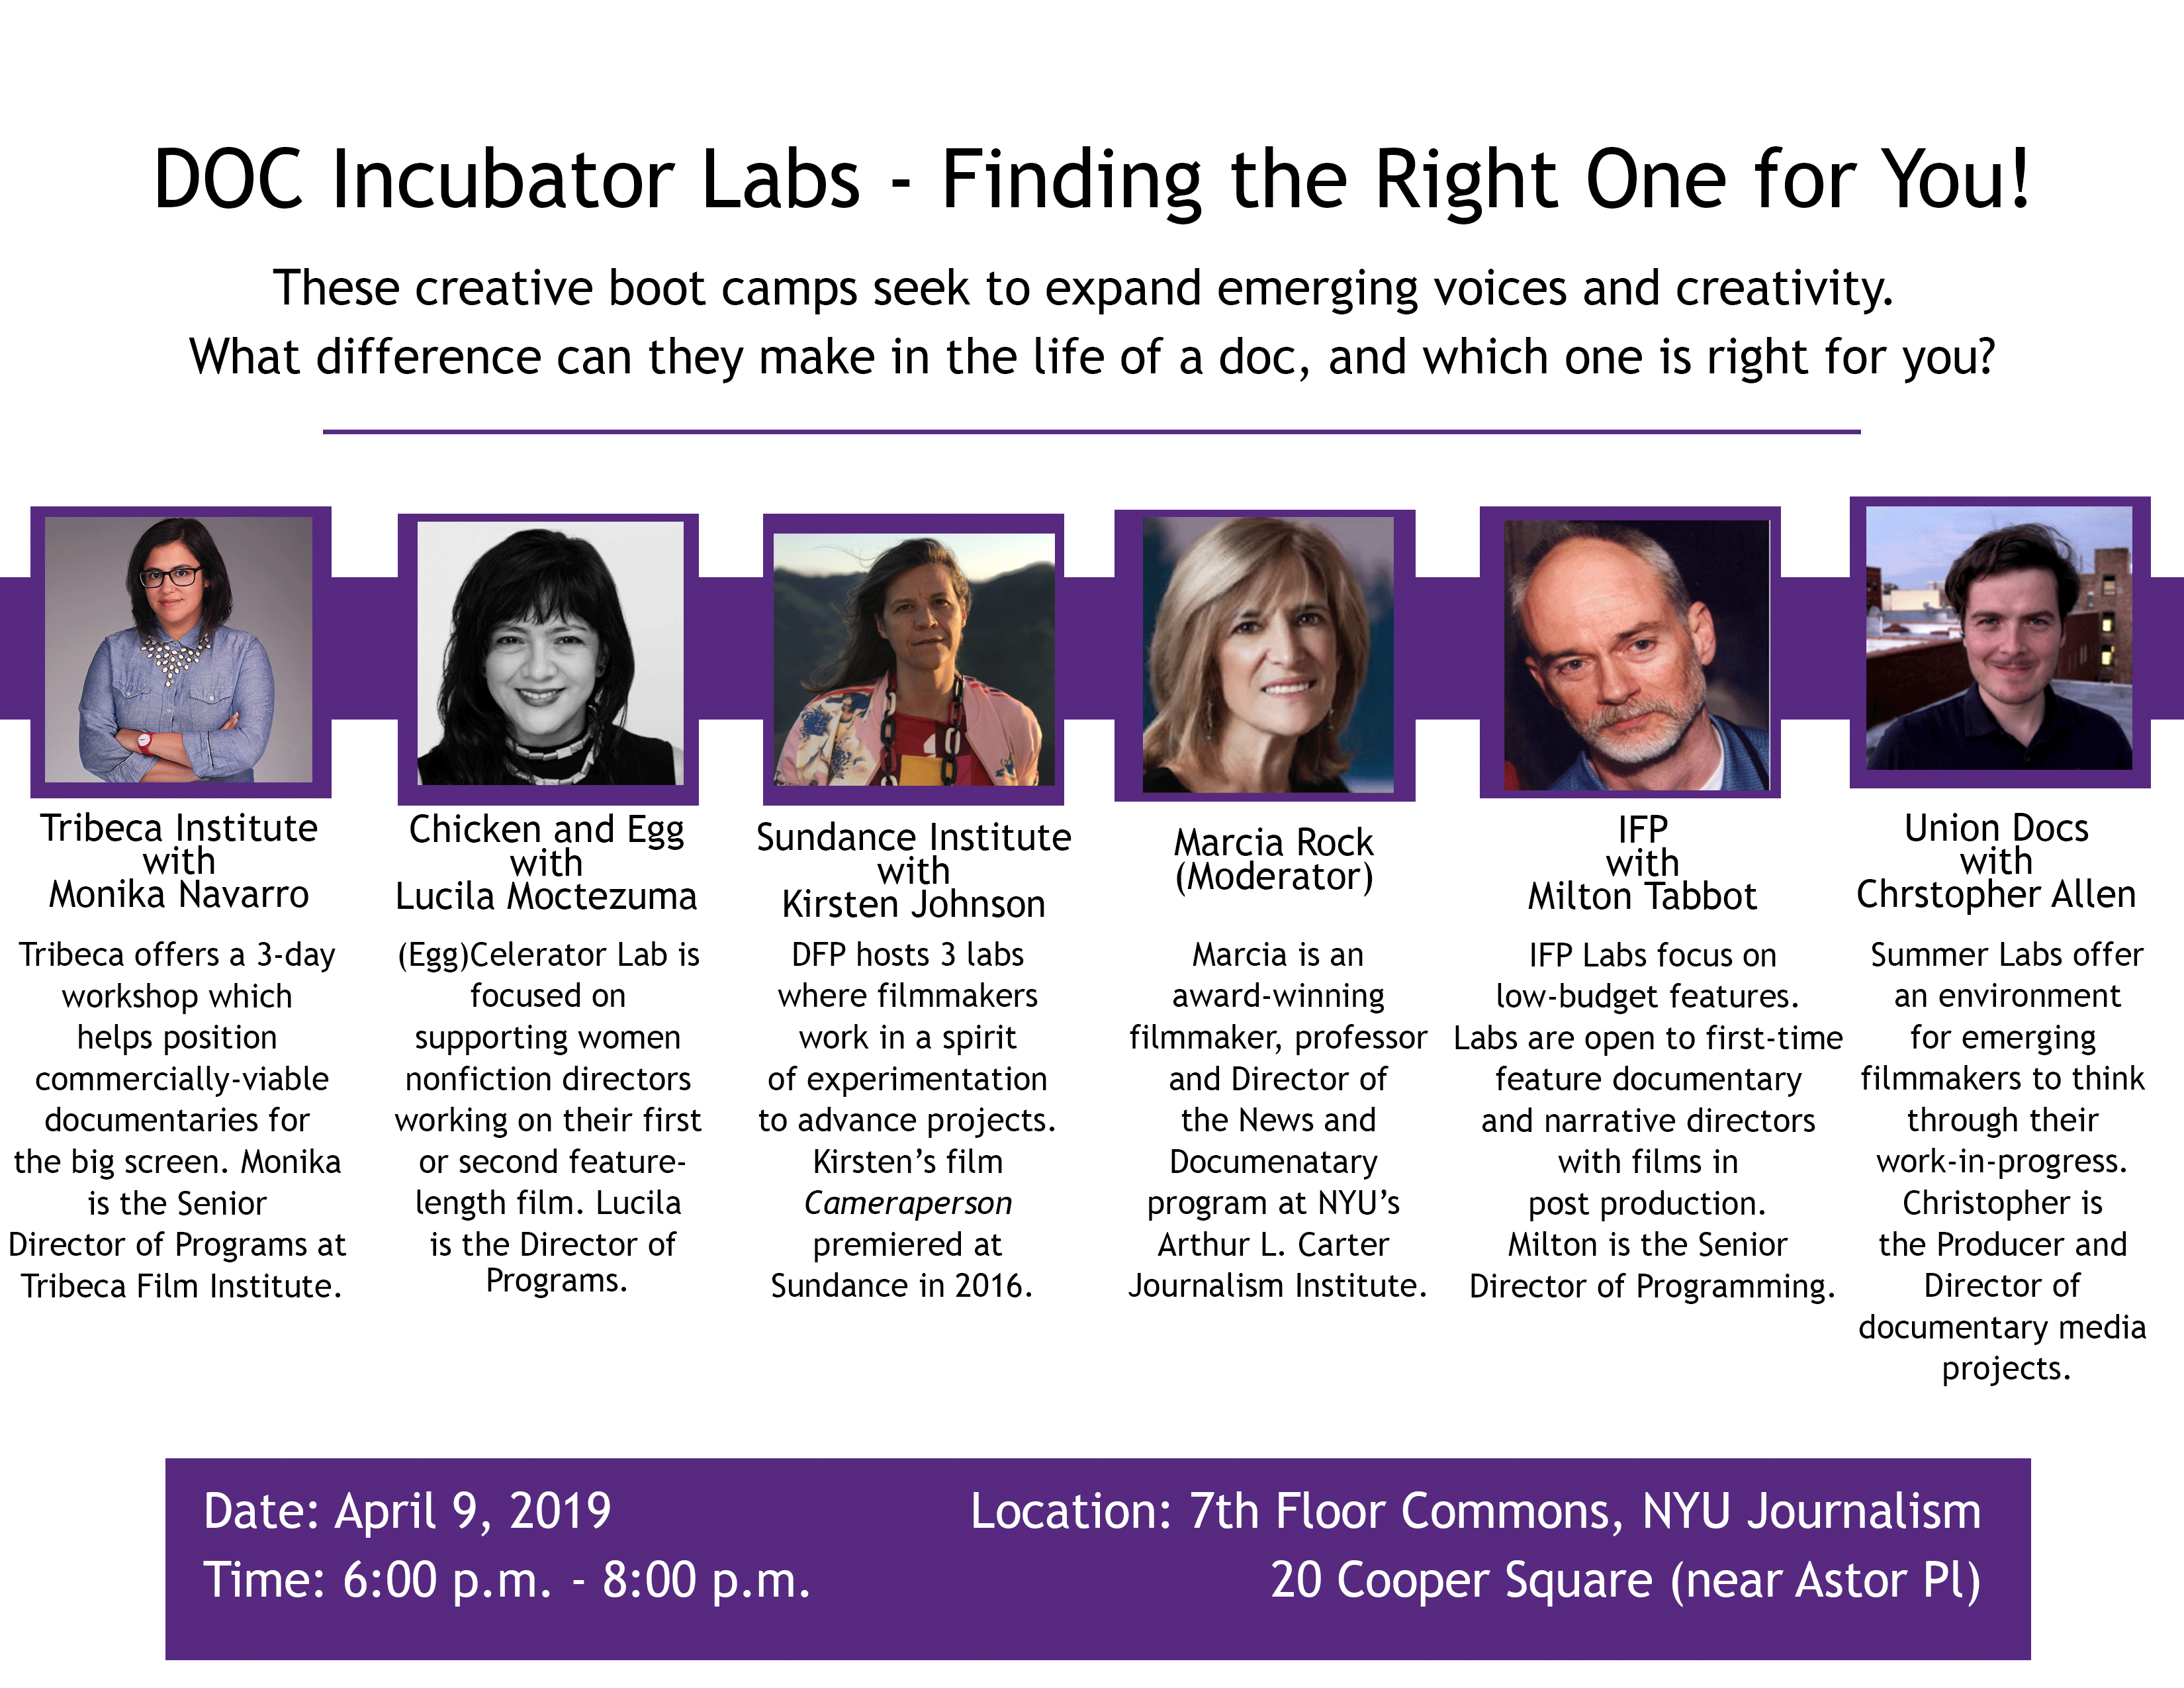 DOC Incubator Labs: Finding the Right One for You!